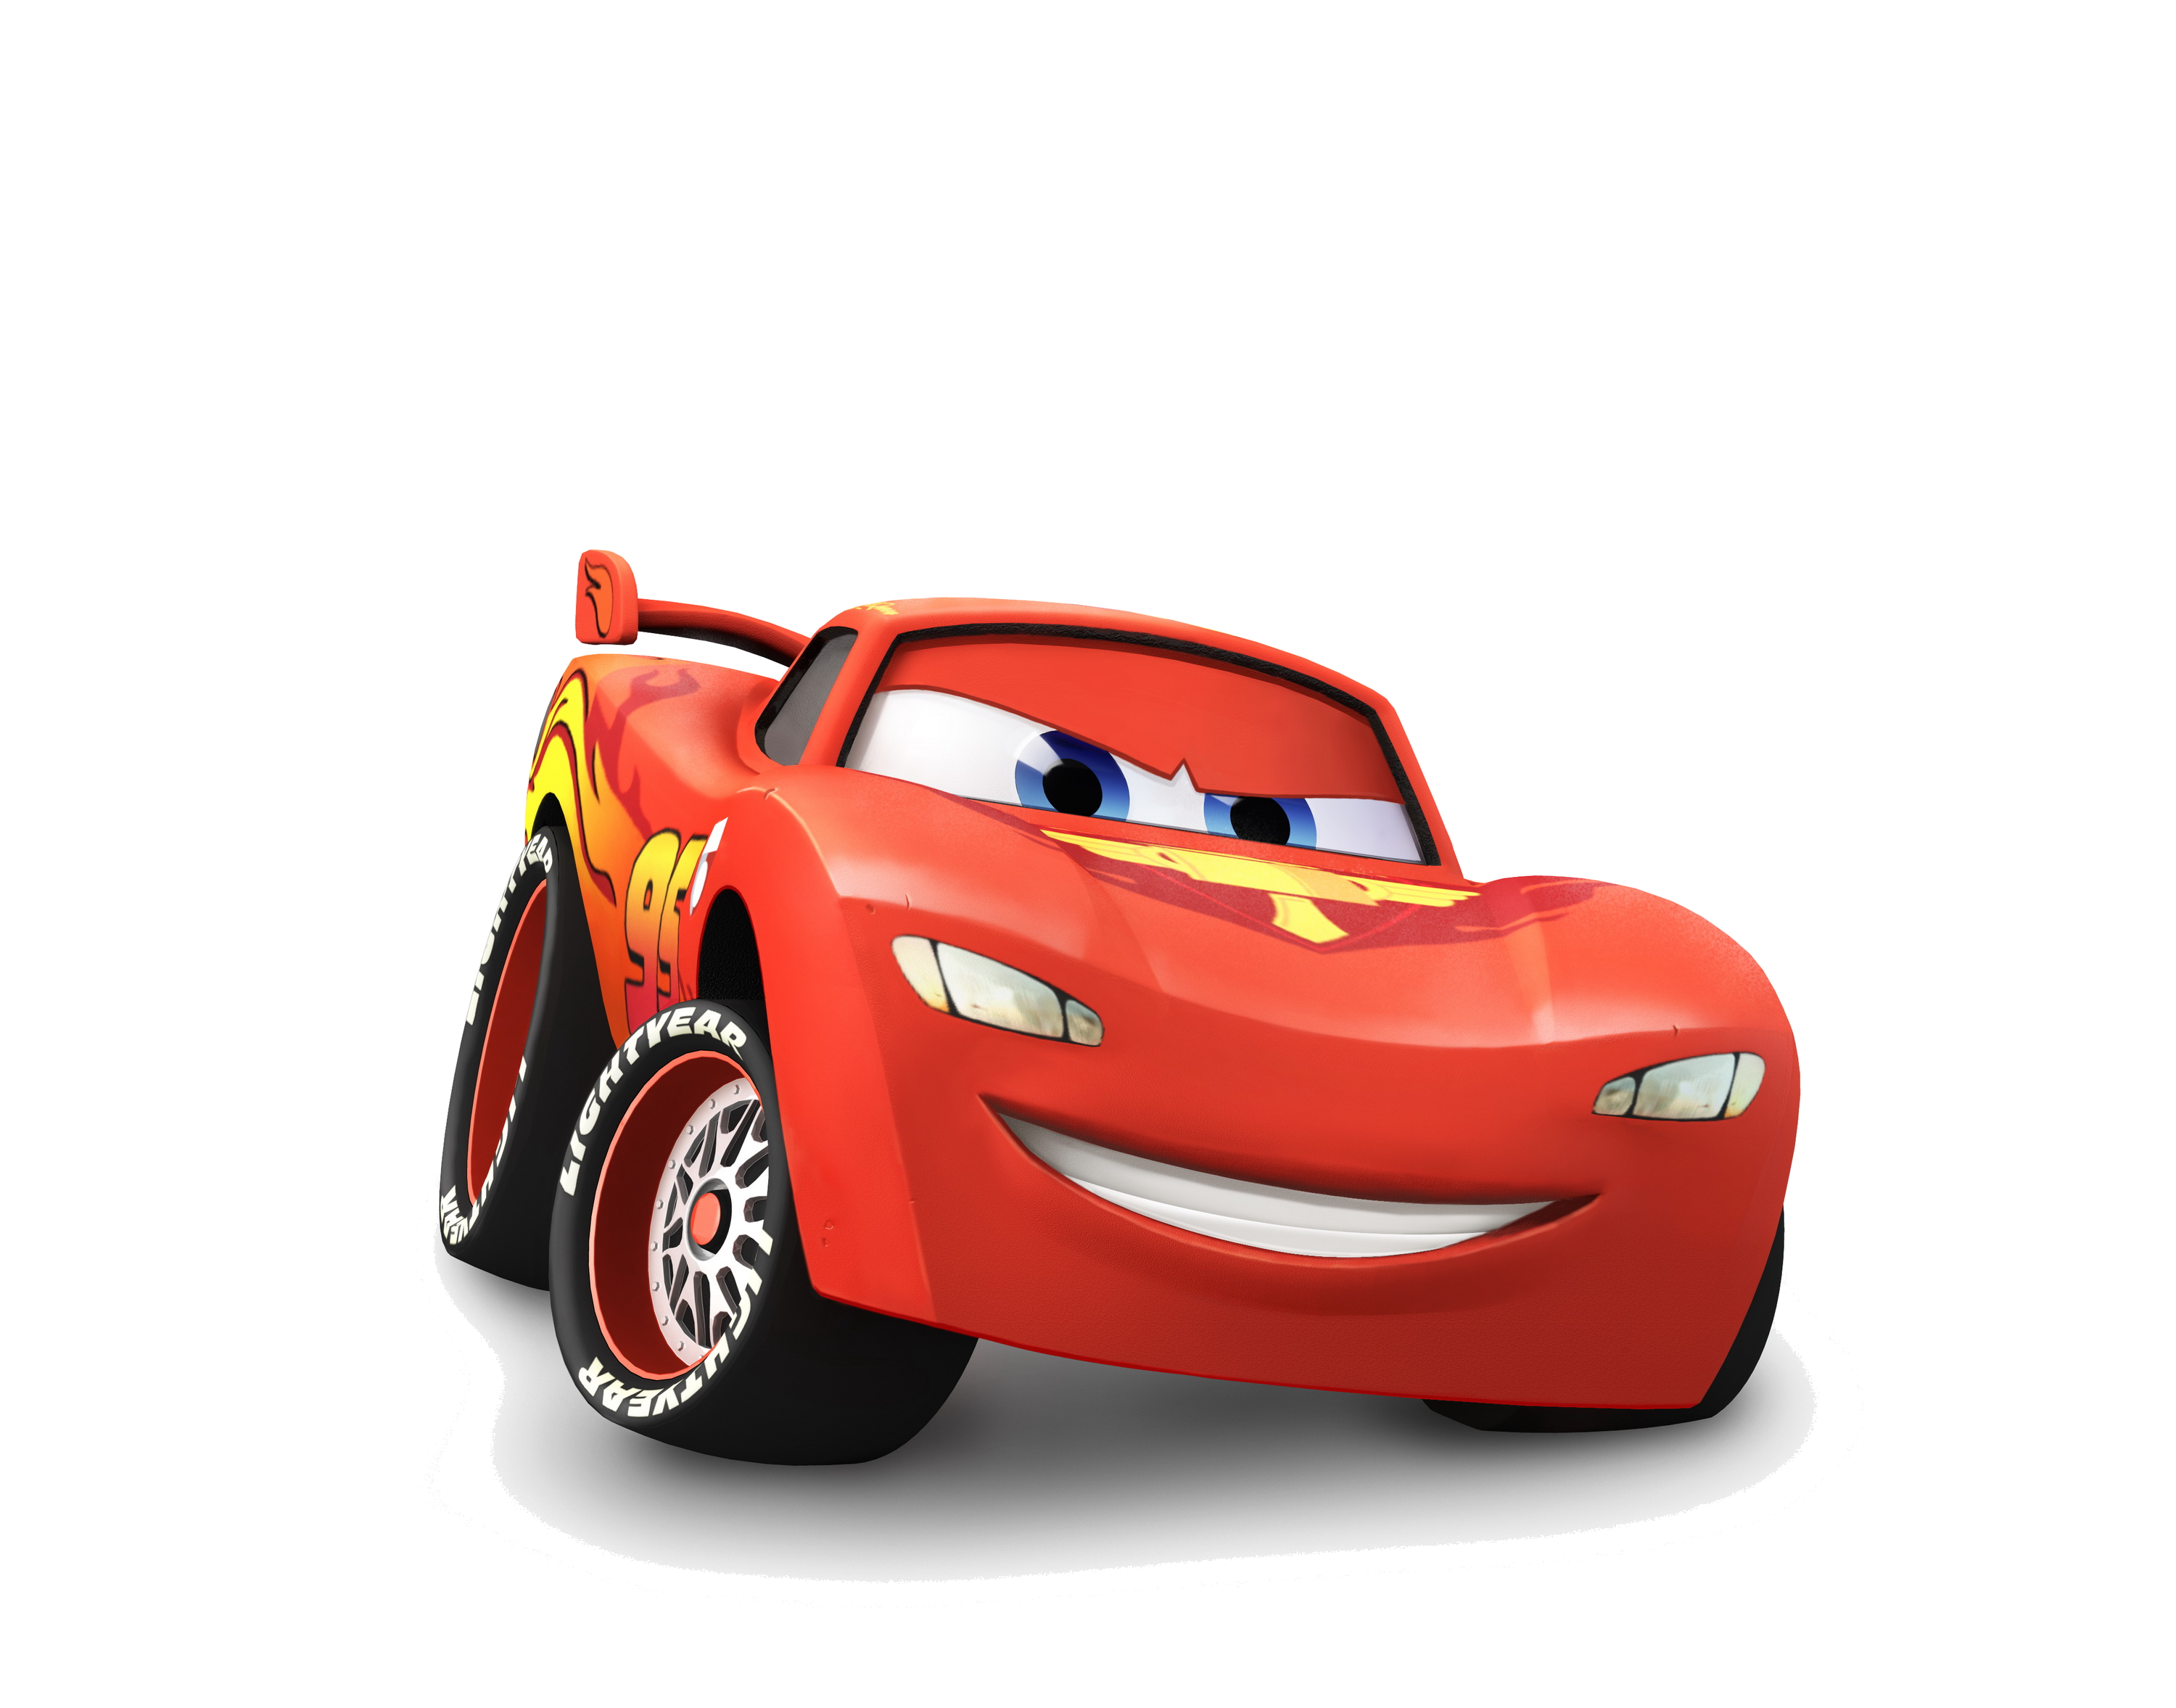 Description Disney Cars Racing On This Wallpaper Mural Features Lightning Mcqueen At The Front Latest Images Lightning Mcqueen Classic Lightning Mcqueen Transportation With Spiderman Disney Cars For Kids Nursery Rhymes Songs Lightning